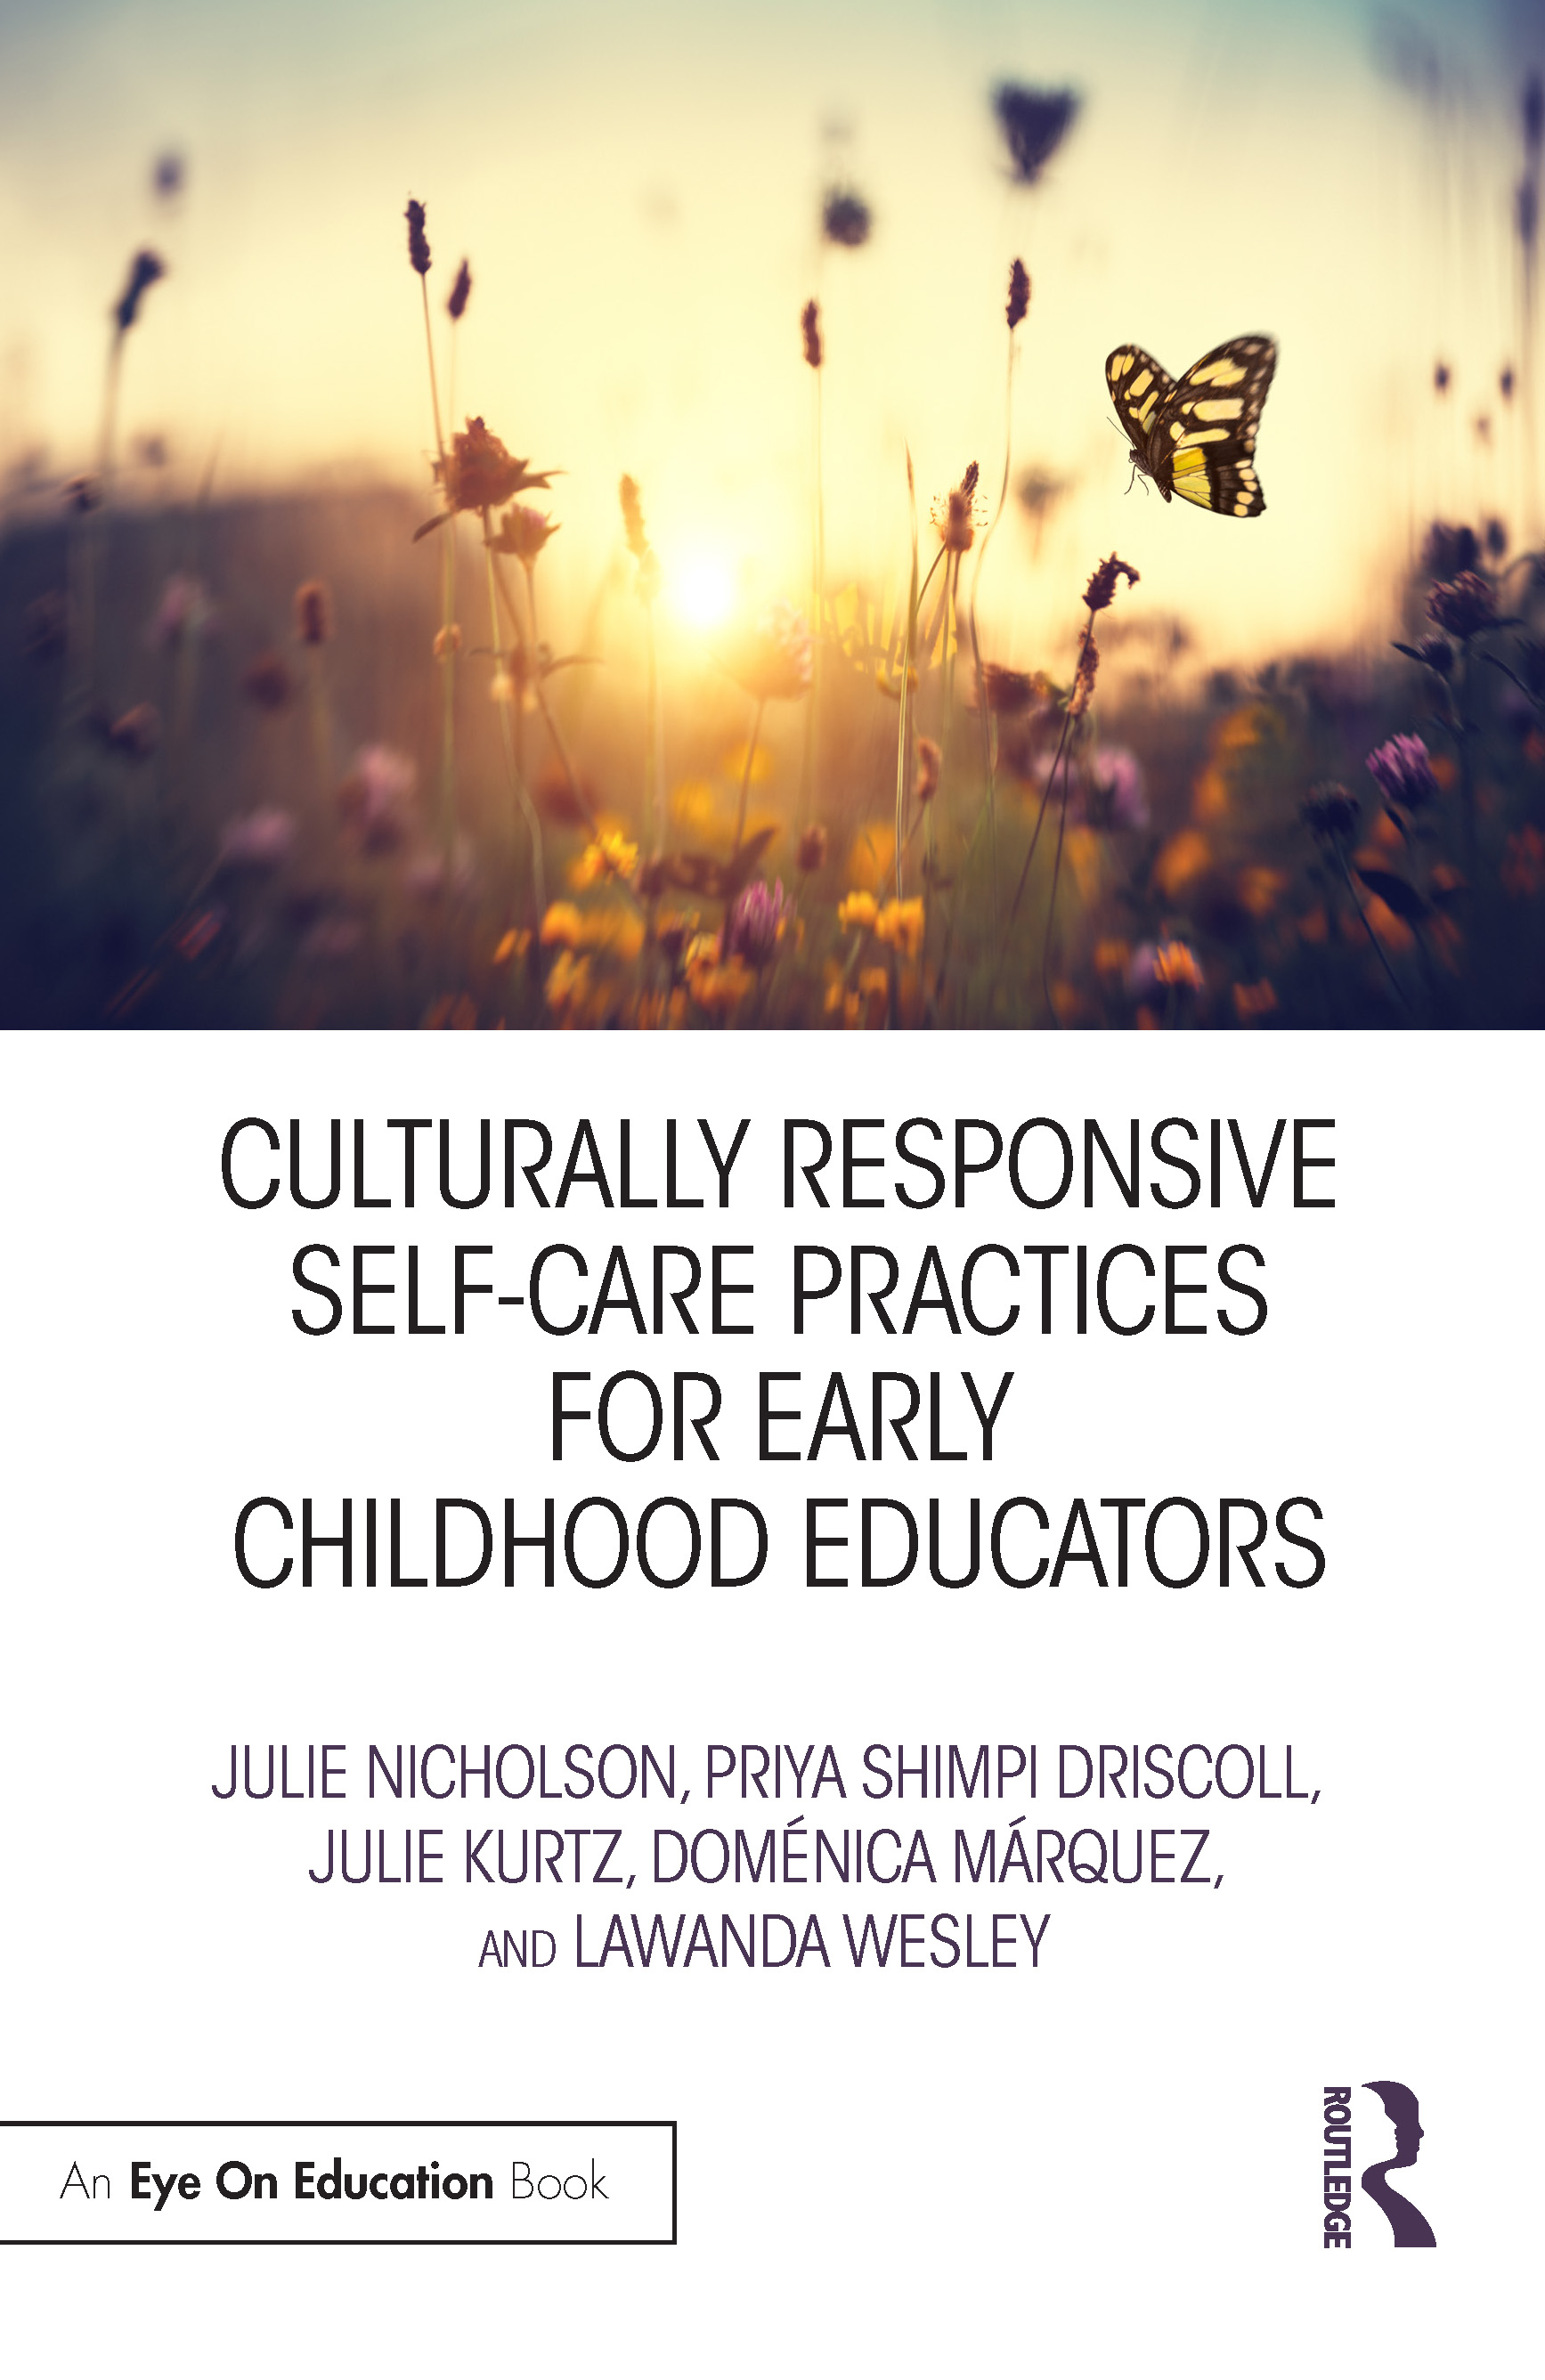 Culturally Responsive Self-Care Practices for Early Childhood Educators book cover